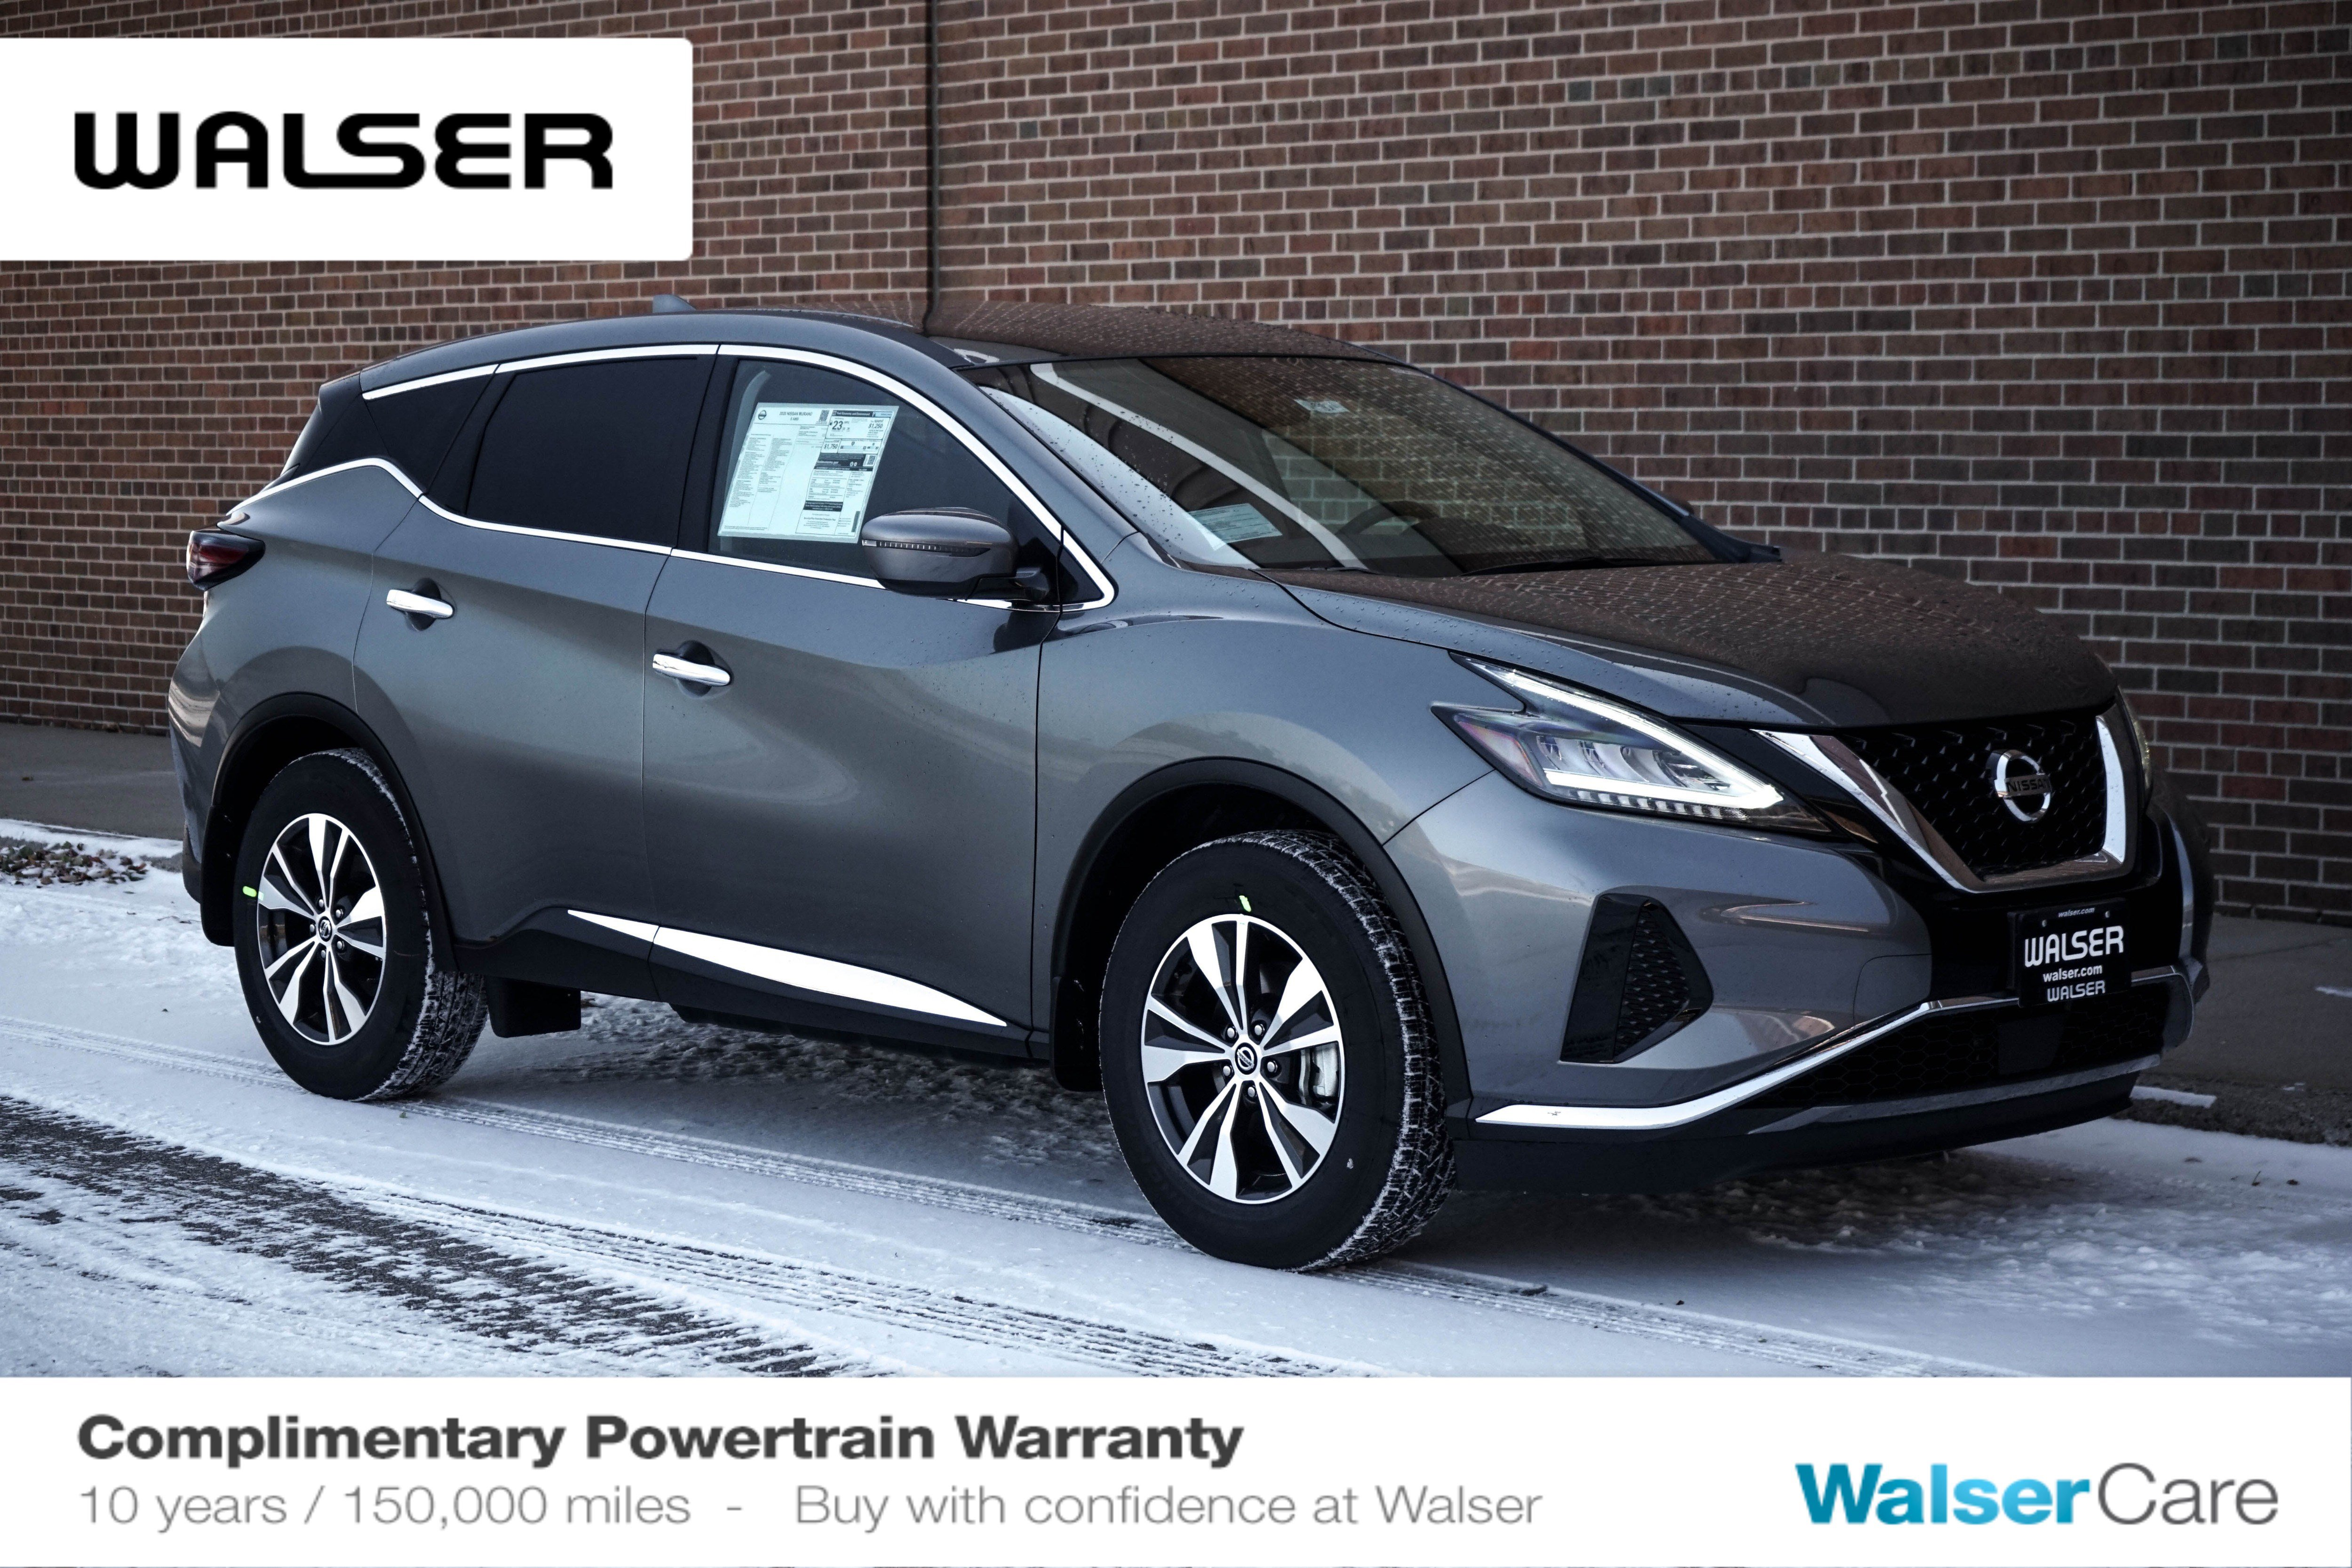 2020 Nissan Murano AWD S Lease Deals